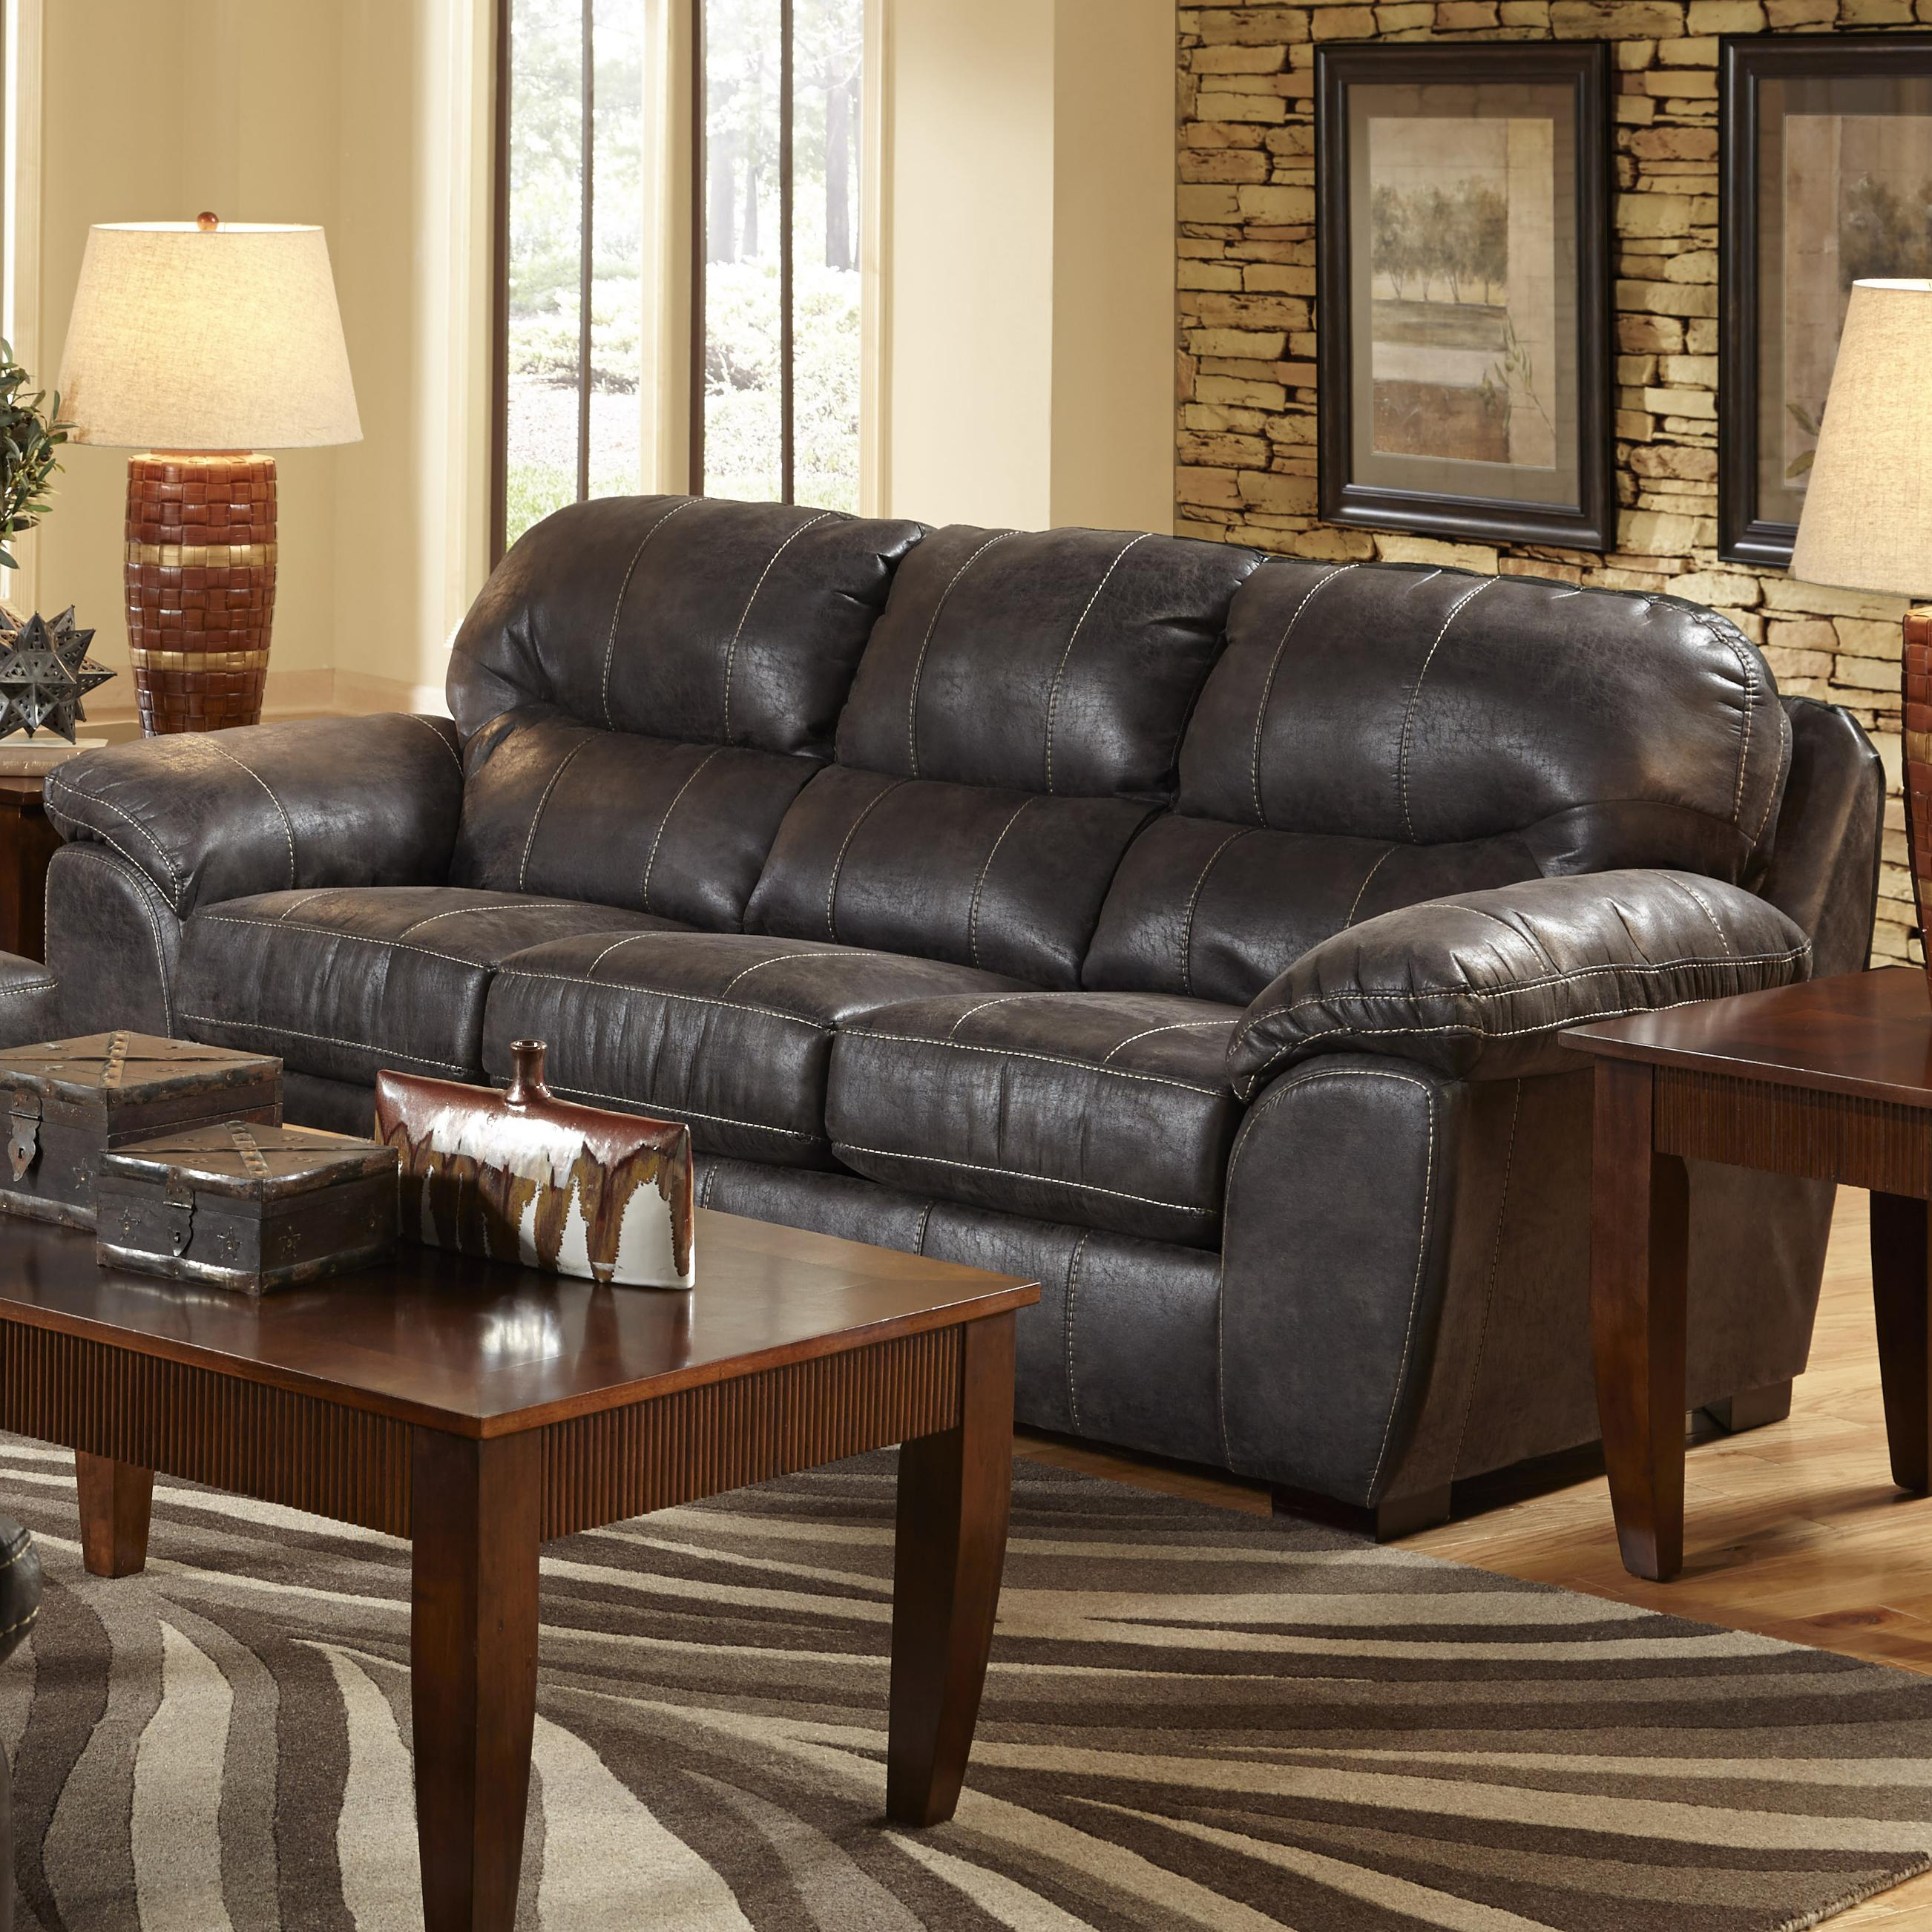 Faux Leather Sleeper Sofa For Living Rooms And Family Rooms By Jackson Furniture Wolf And